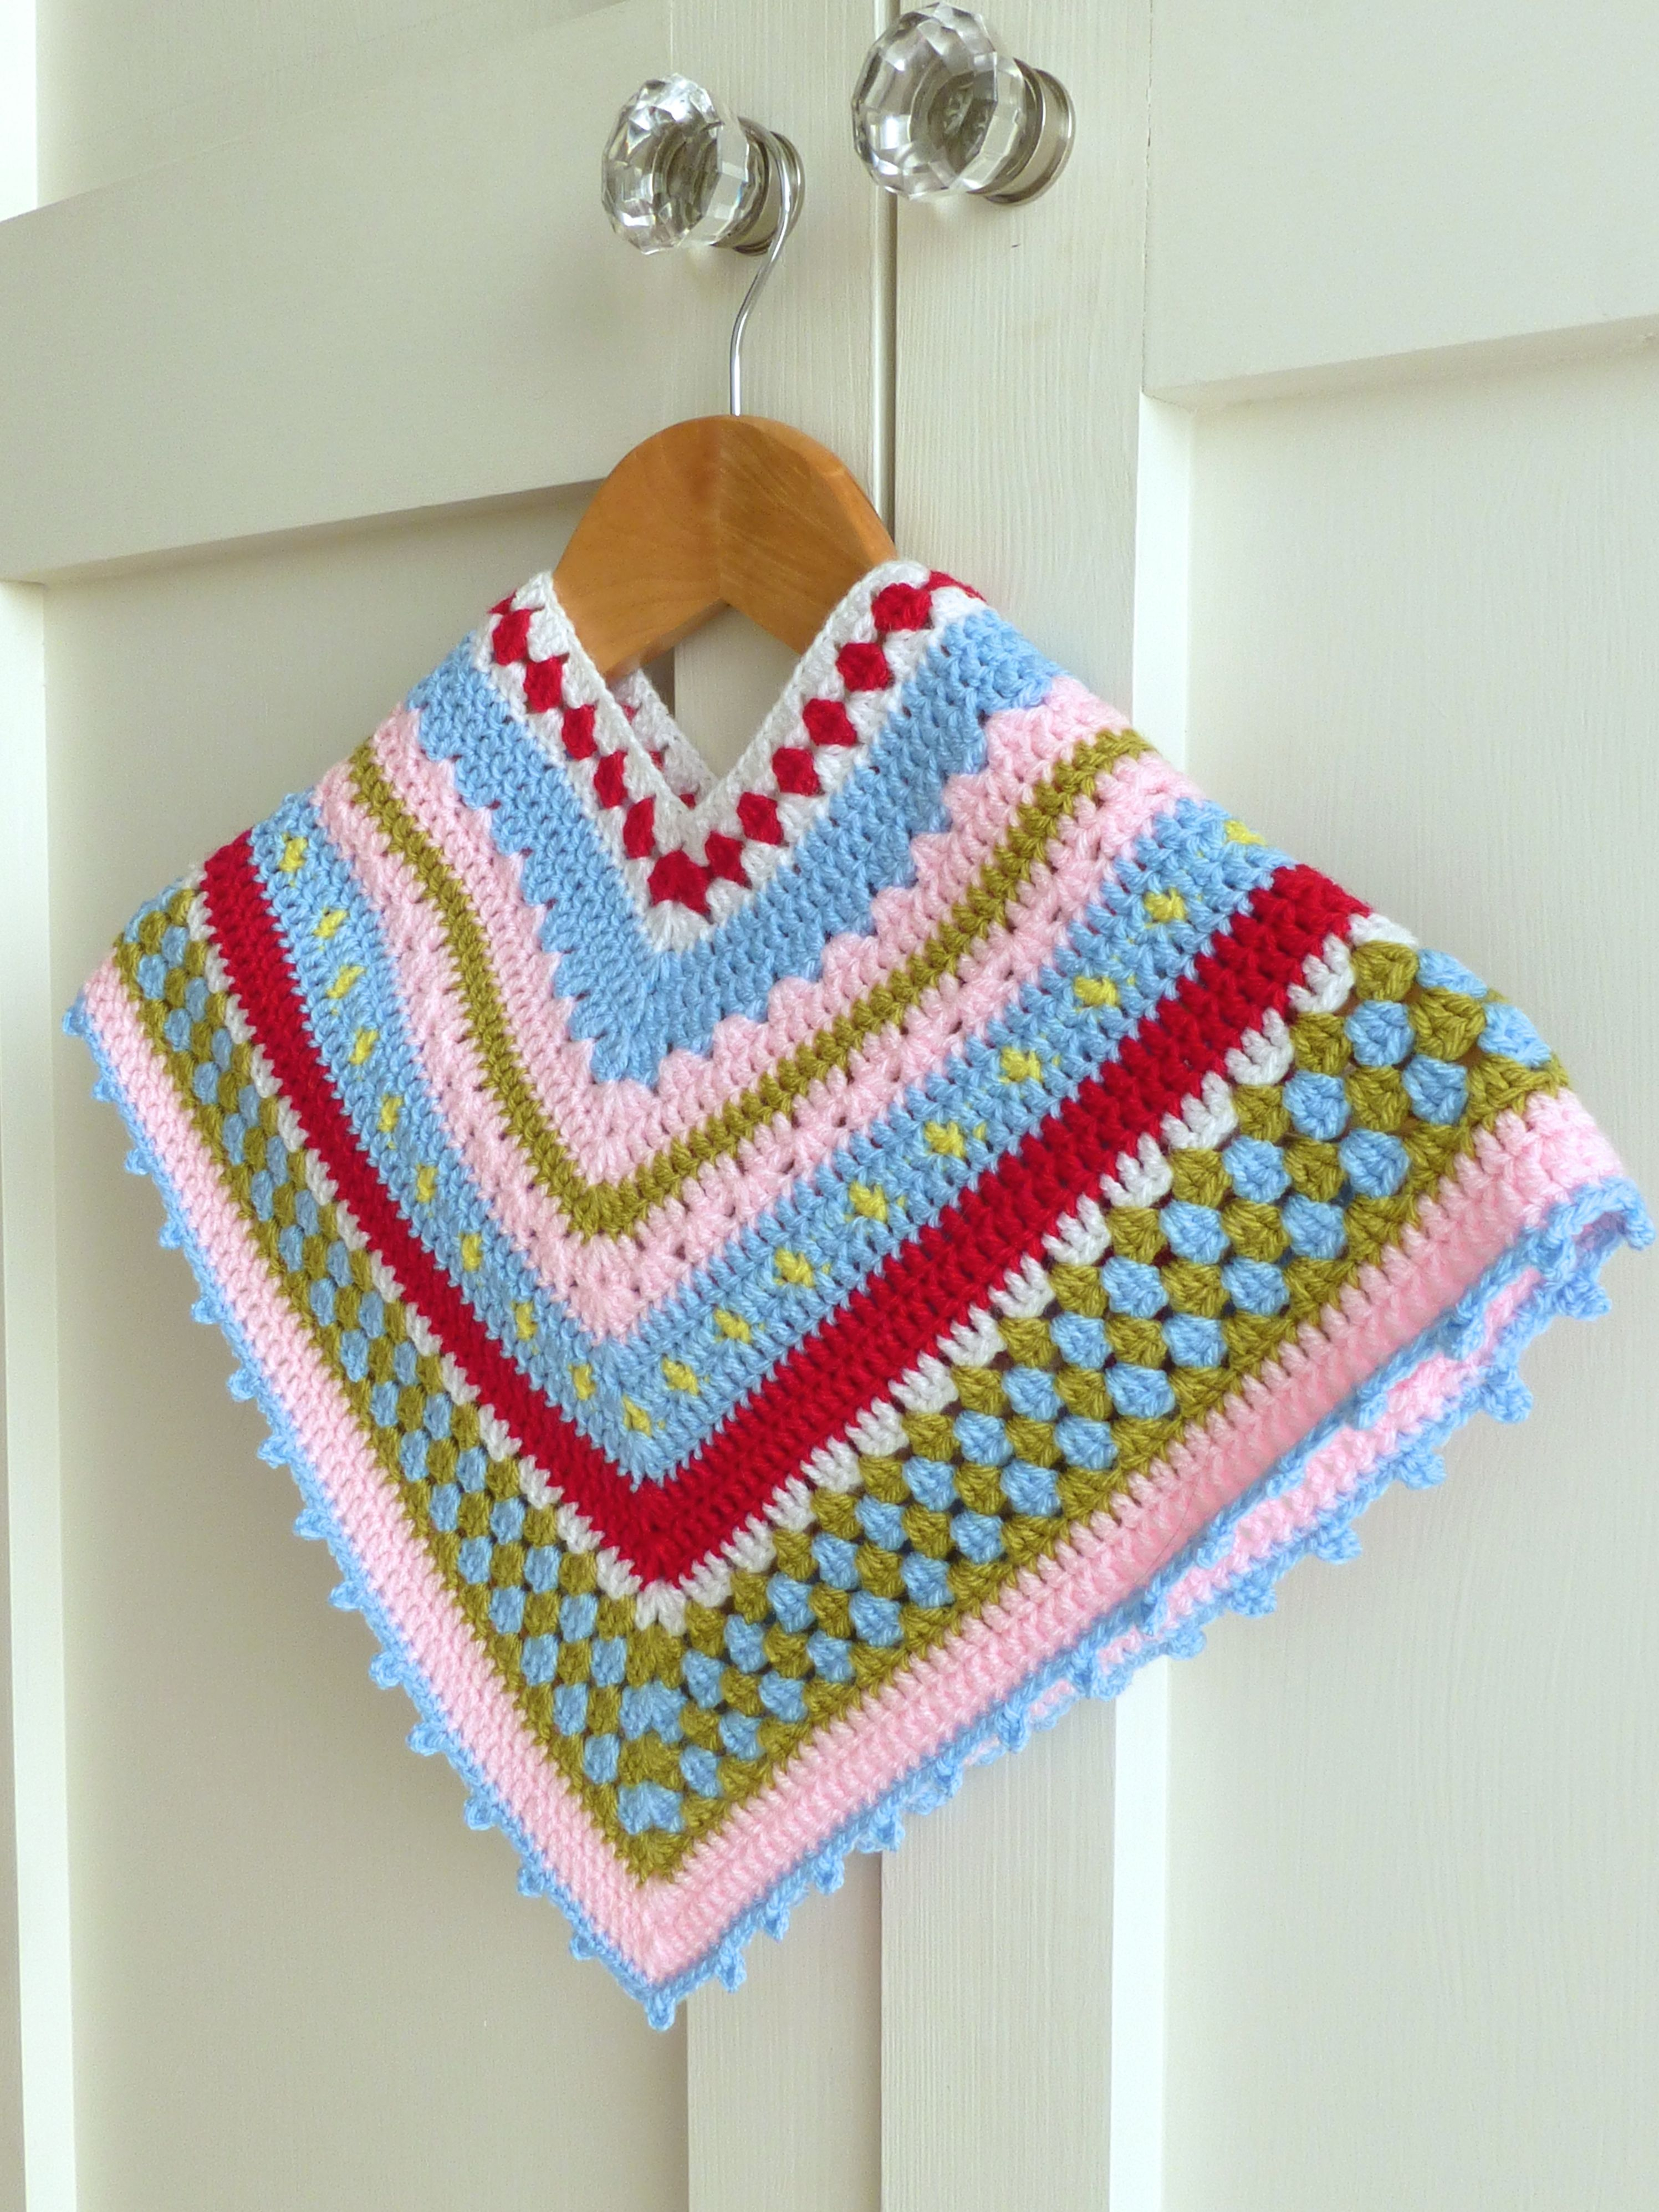 List of Free Crochet Patterns for Toddlers Ponchos Greengate Style Ba Toddler Girls Crochet Poncho Sewchet